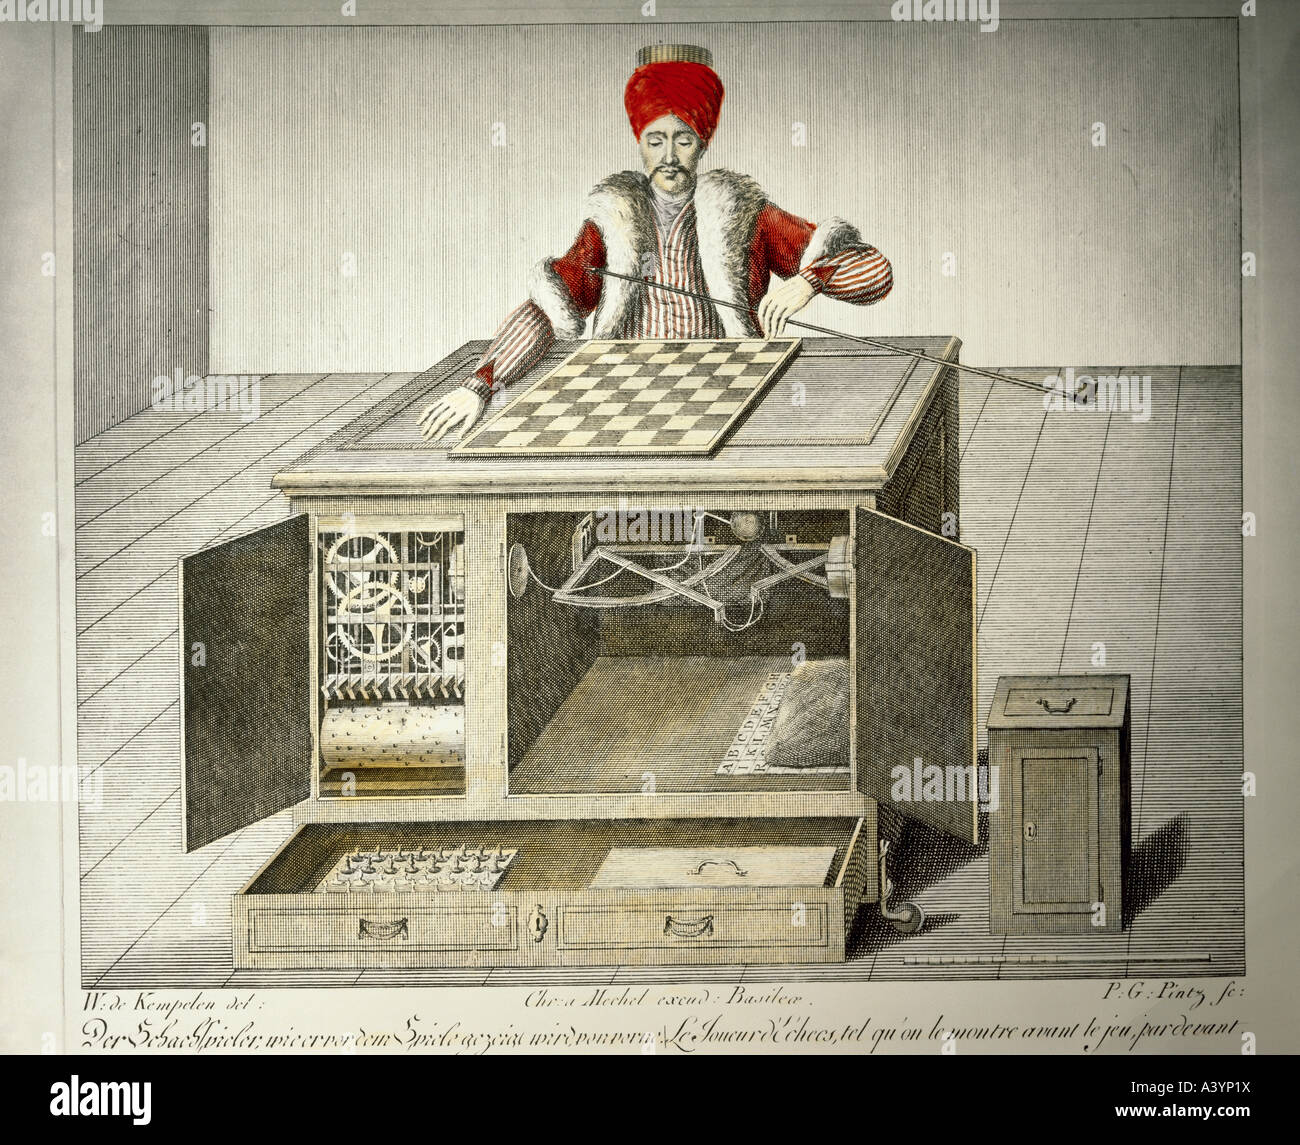 game and gambling, gaming machines, chess playing Turk, design by Wolfgang von Kempelen (1734 - 1804), built by Stock Photo